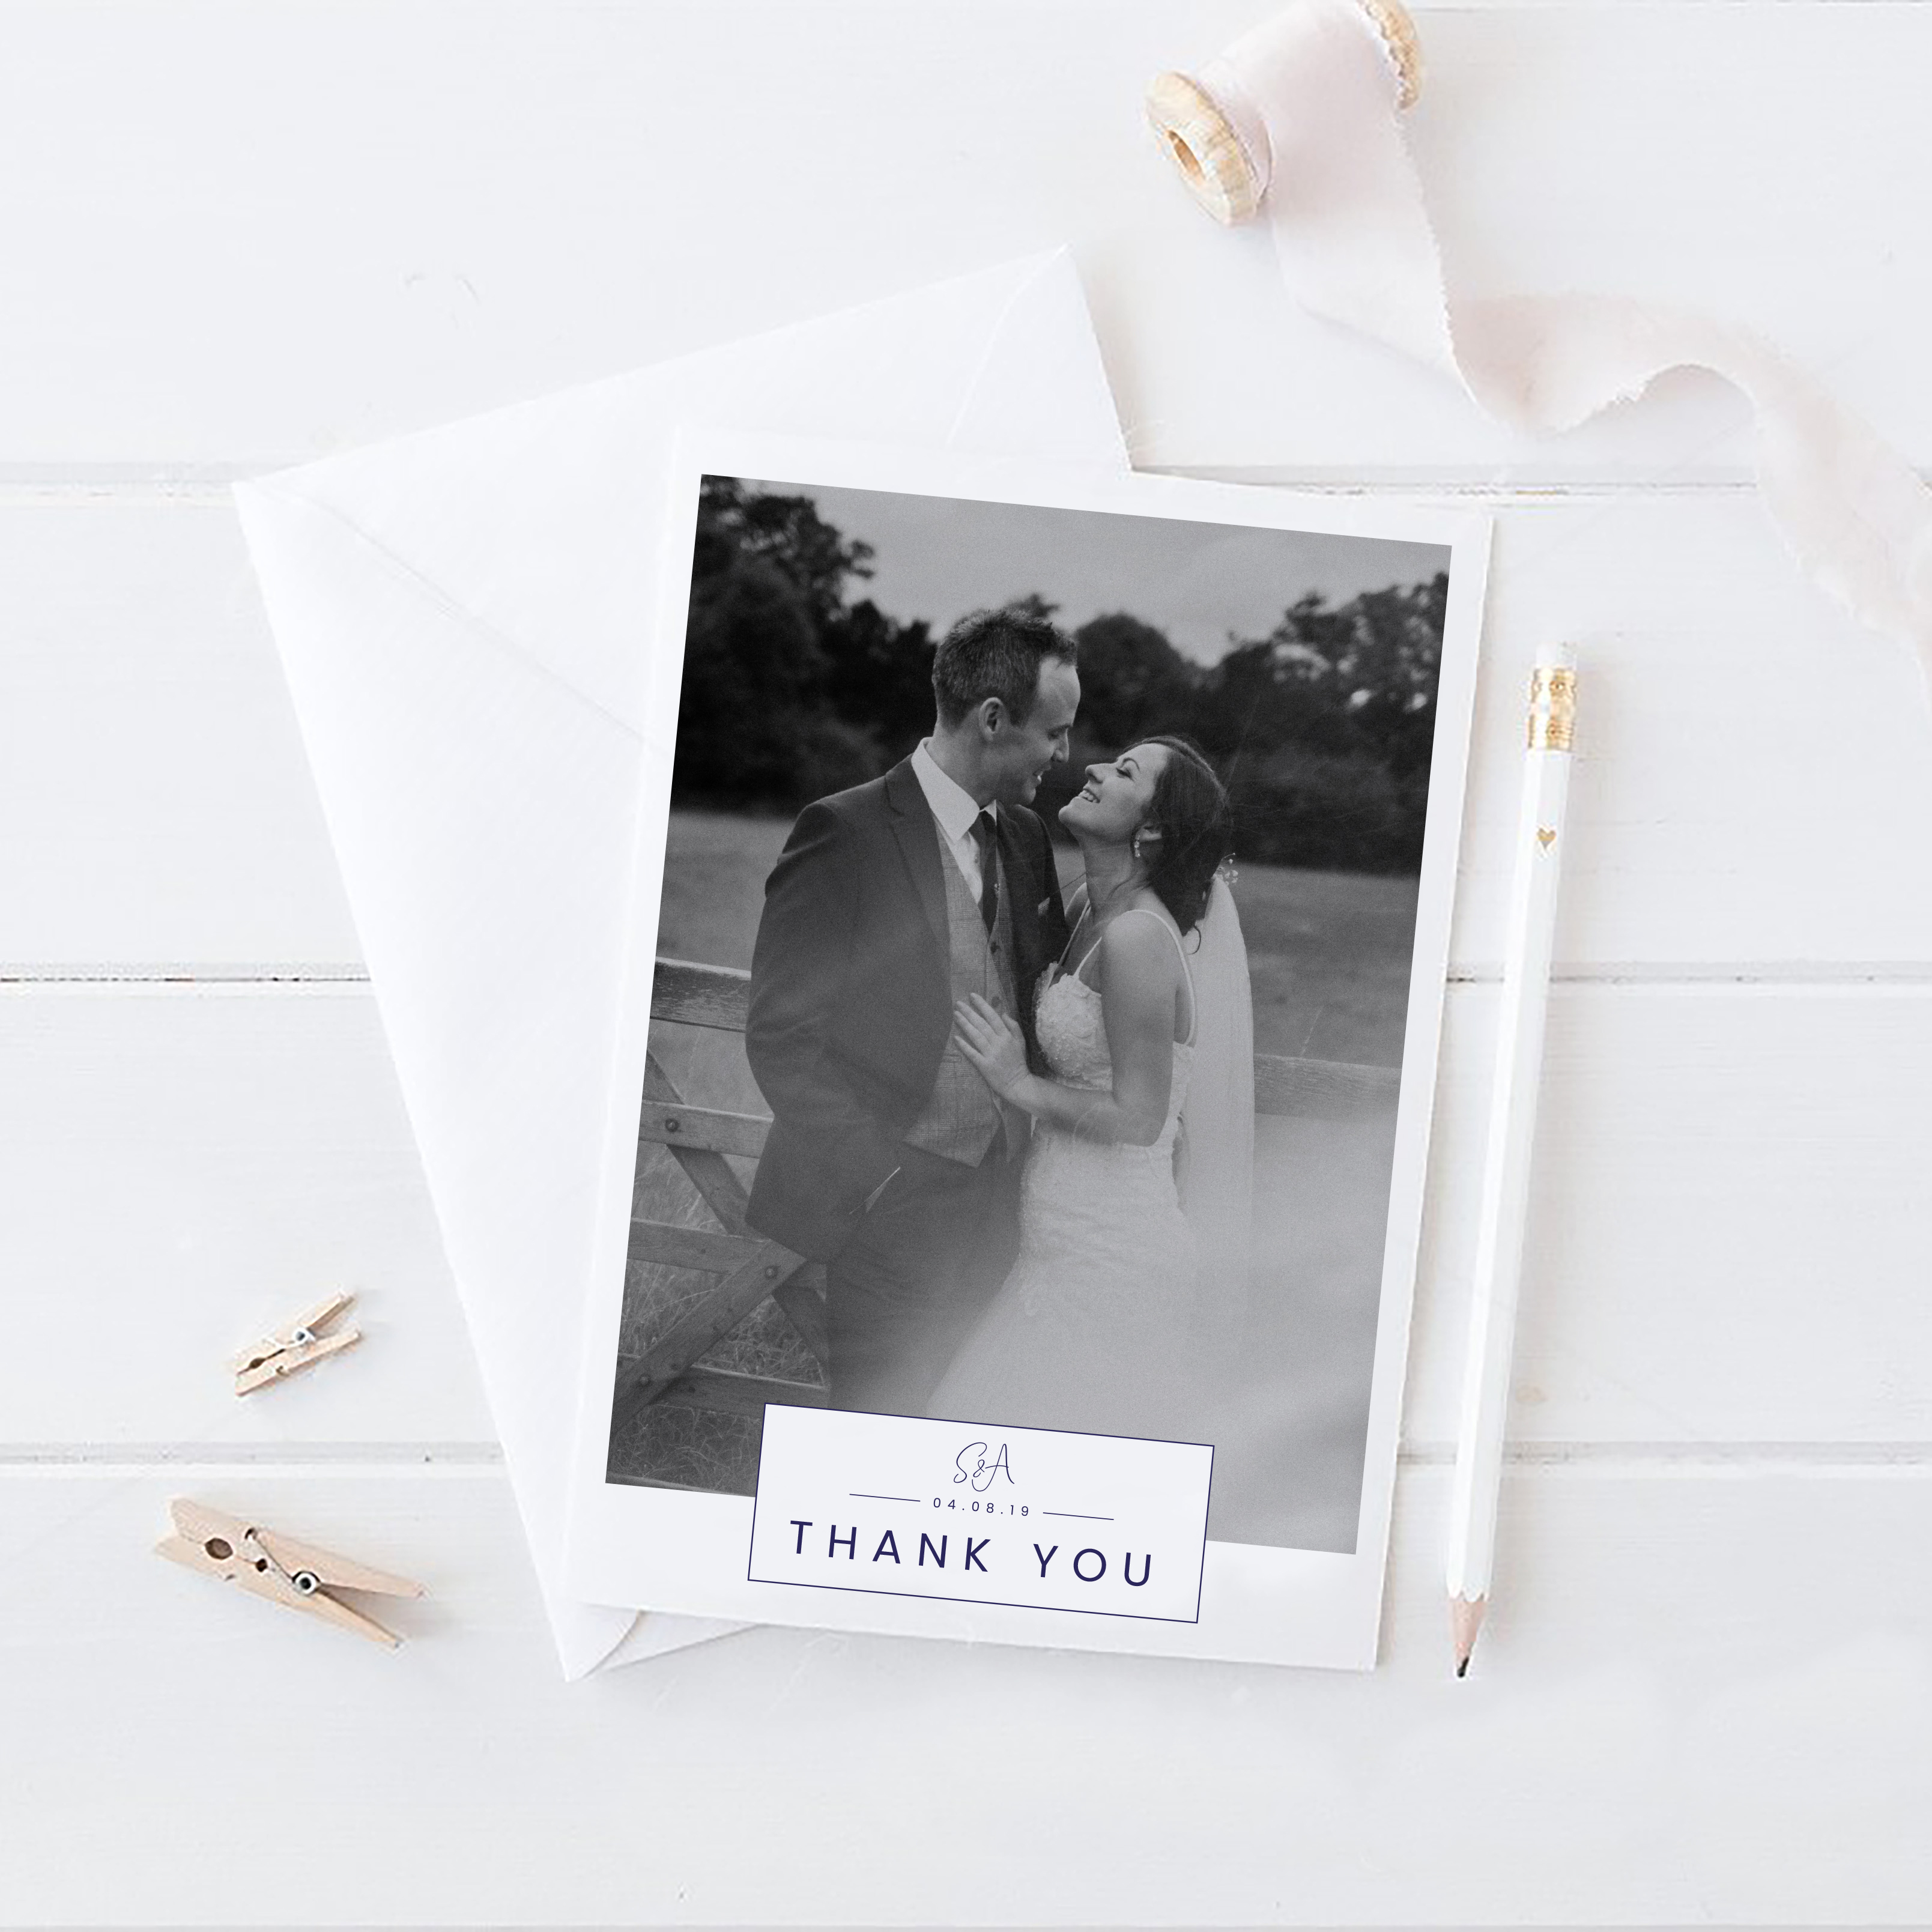 Thank you cards - S&A